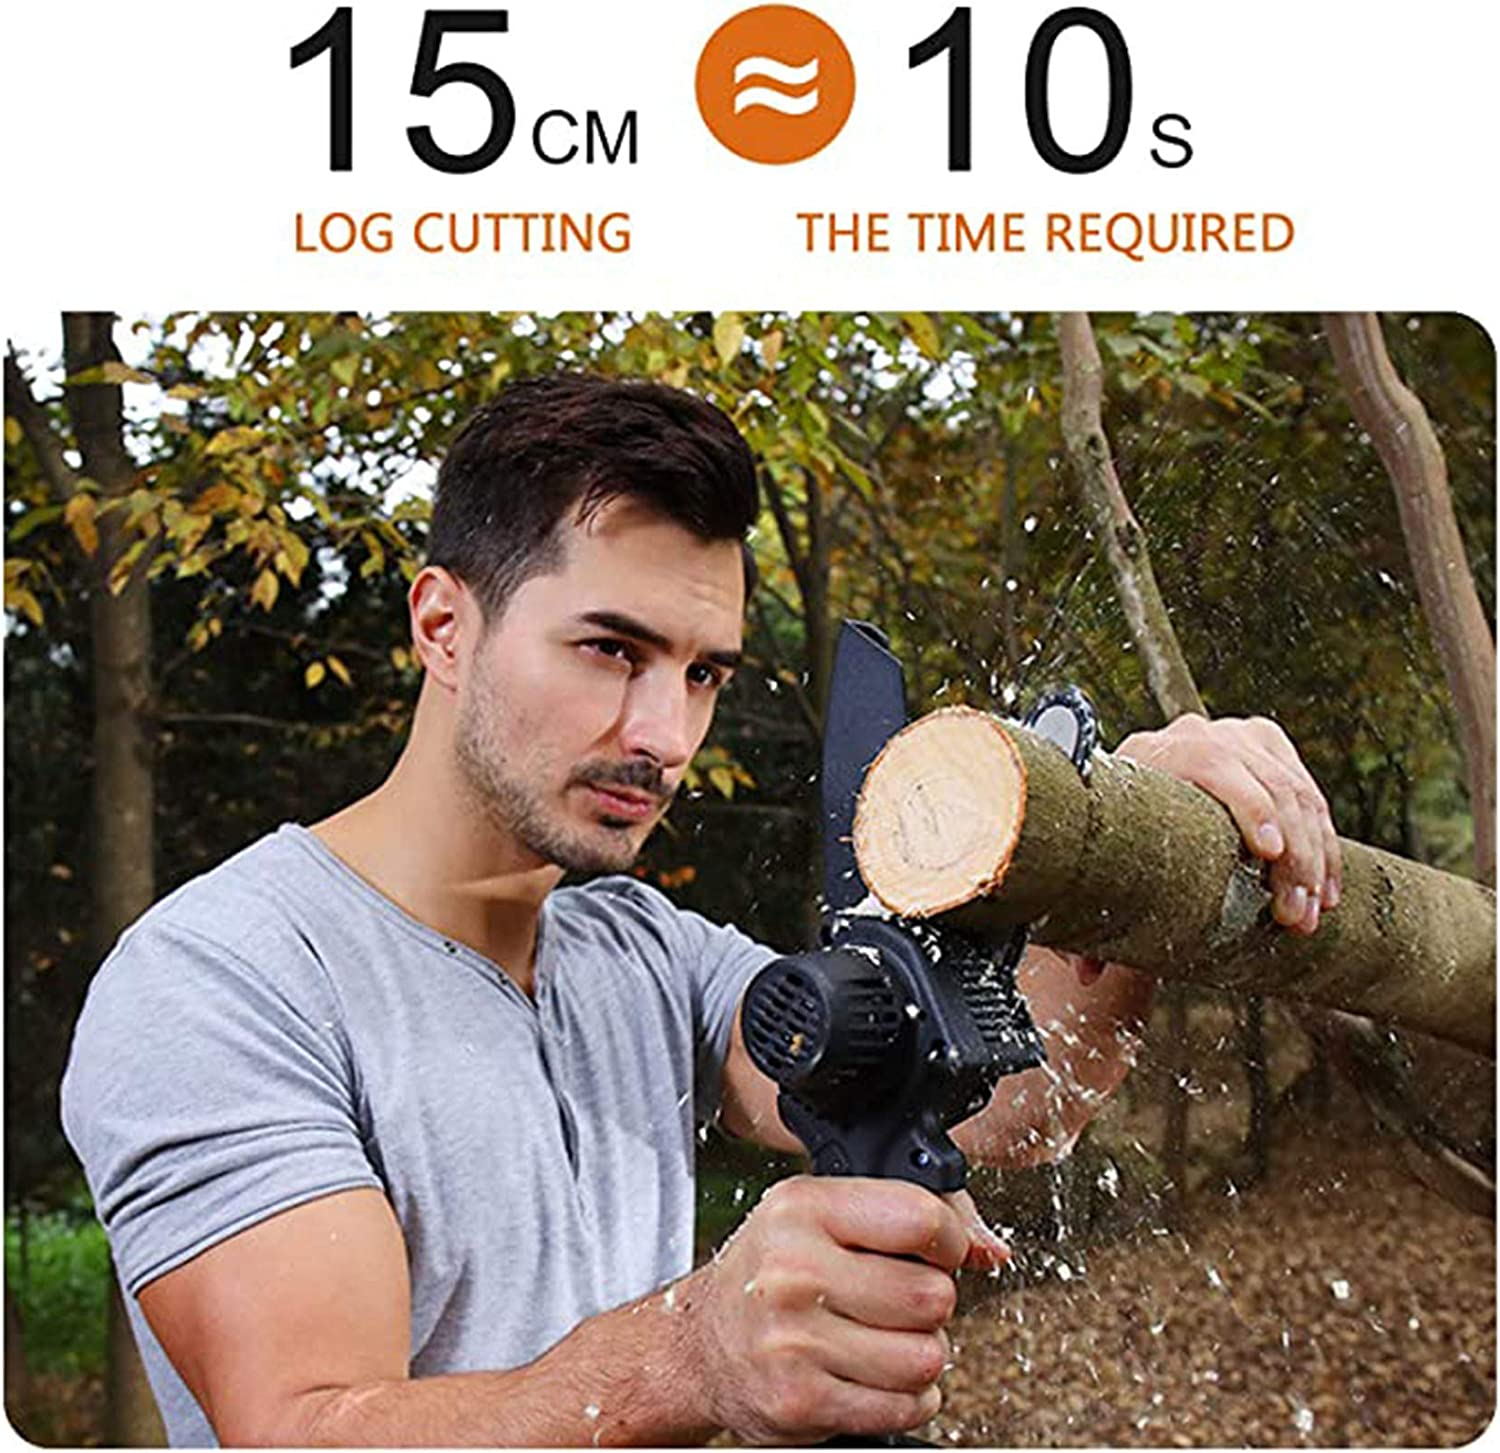 Rechargeable Mini Chainsaw Cordless 6 Inch Pruning Shears Chainsaw With 2pcs Batteries one Handed Battery Powered for Garden Tree Branch Logging Wood Cutting